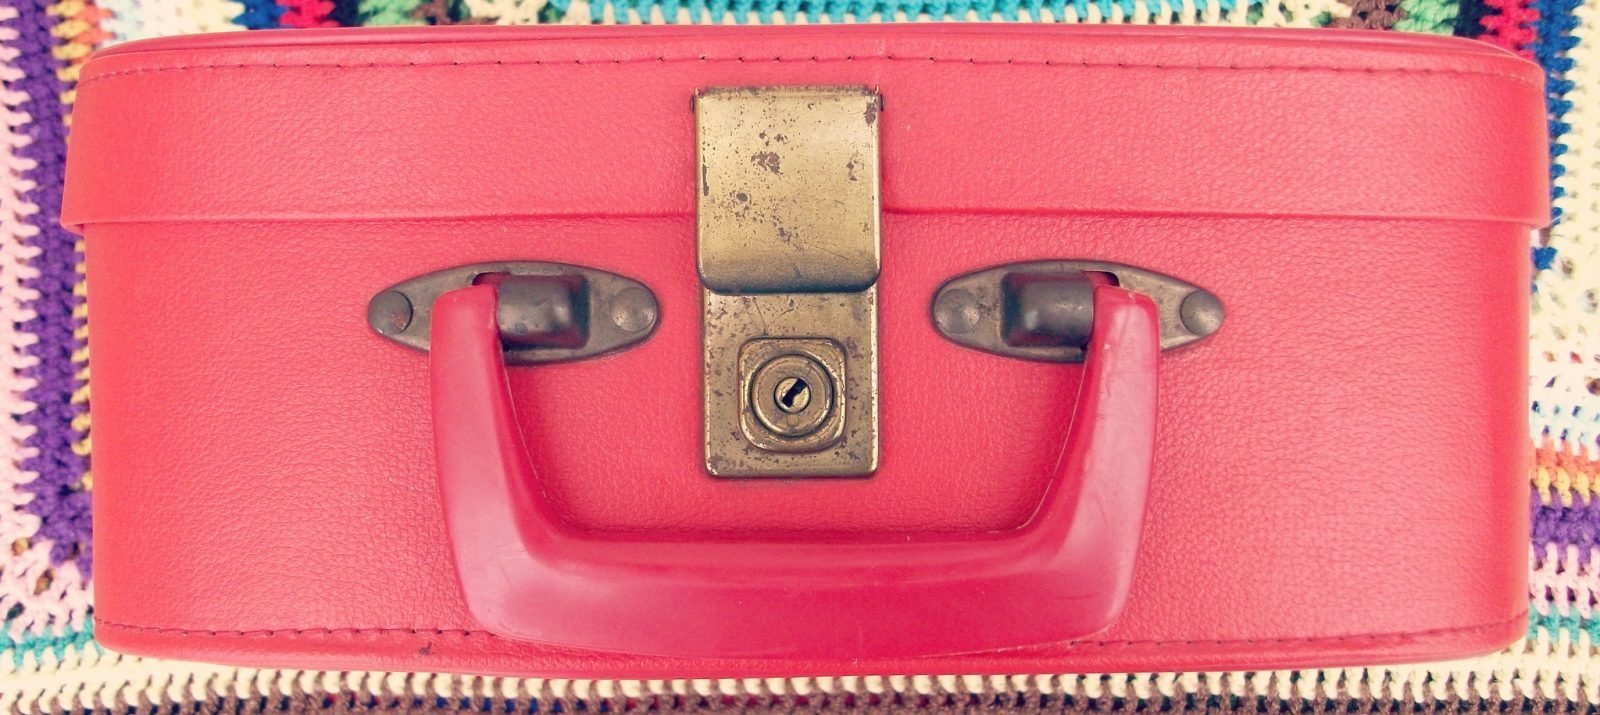 small red suitcase